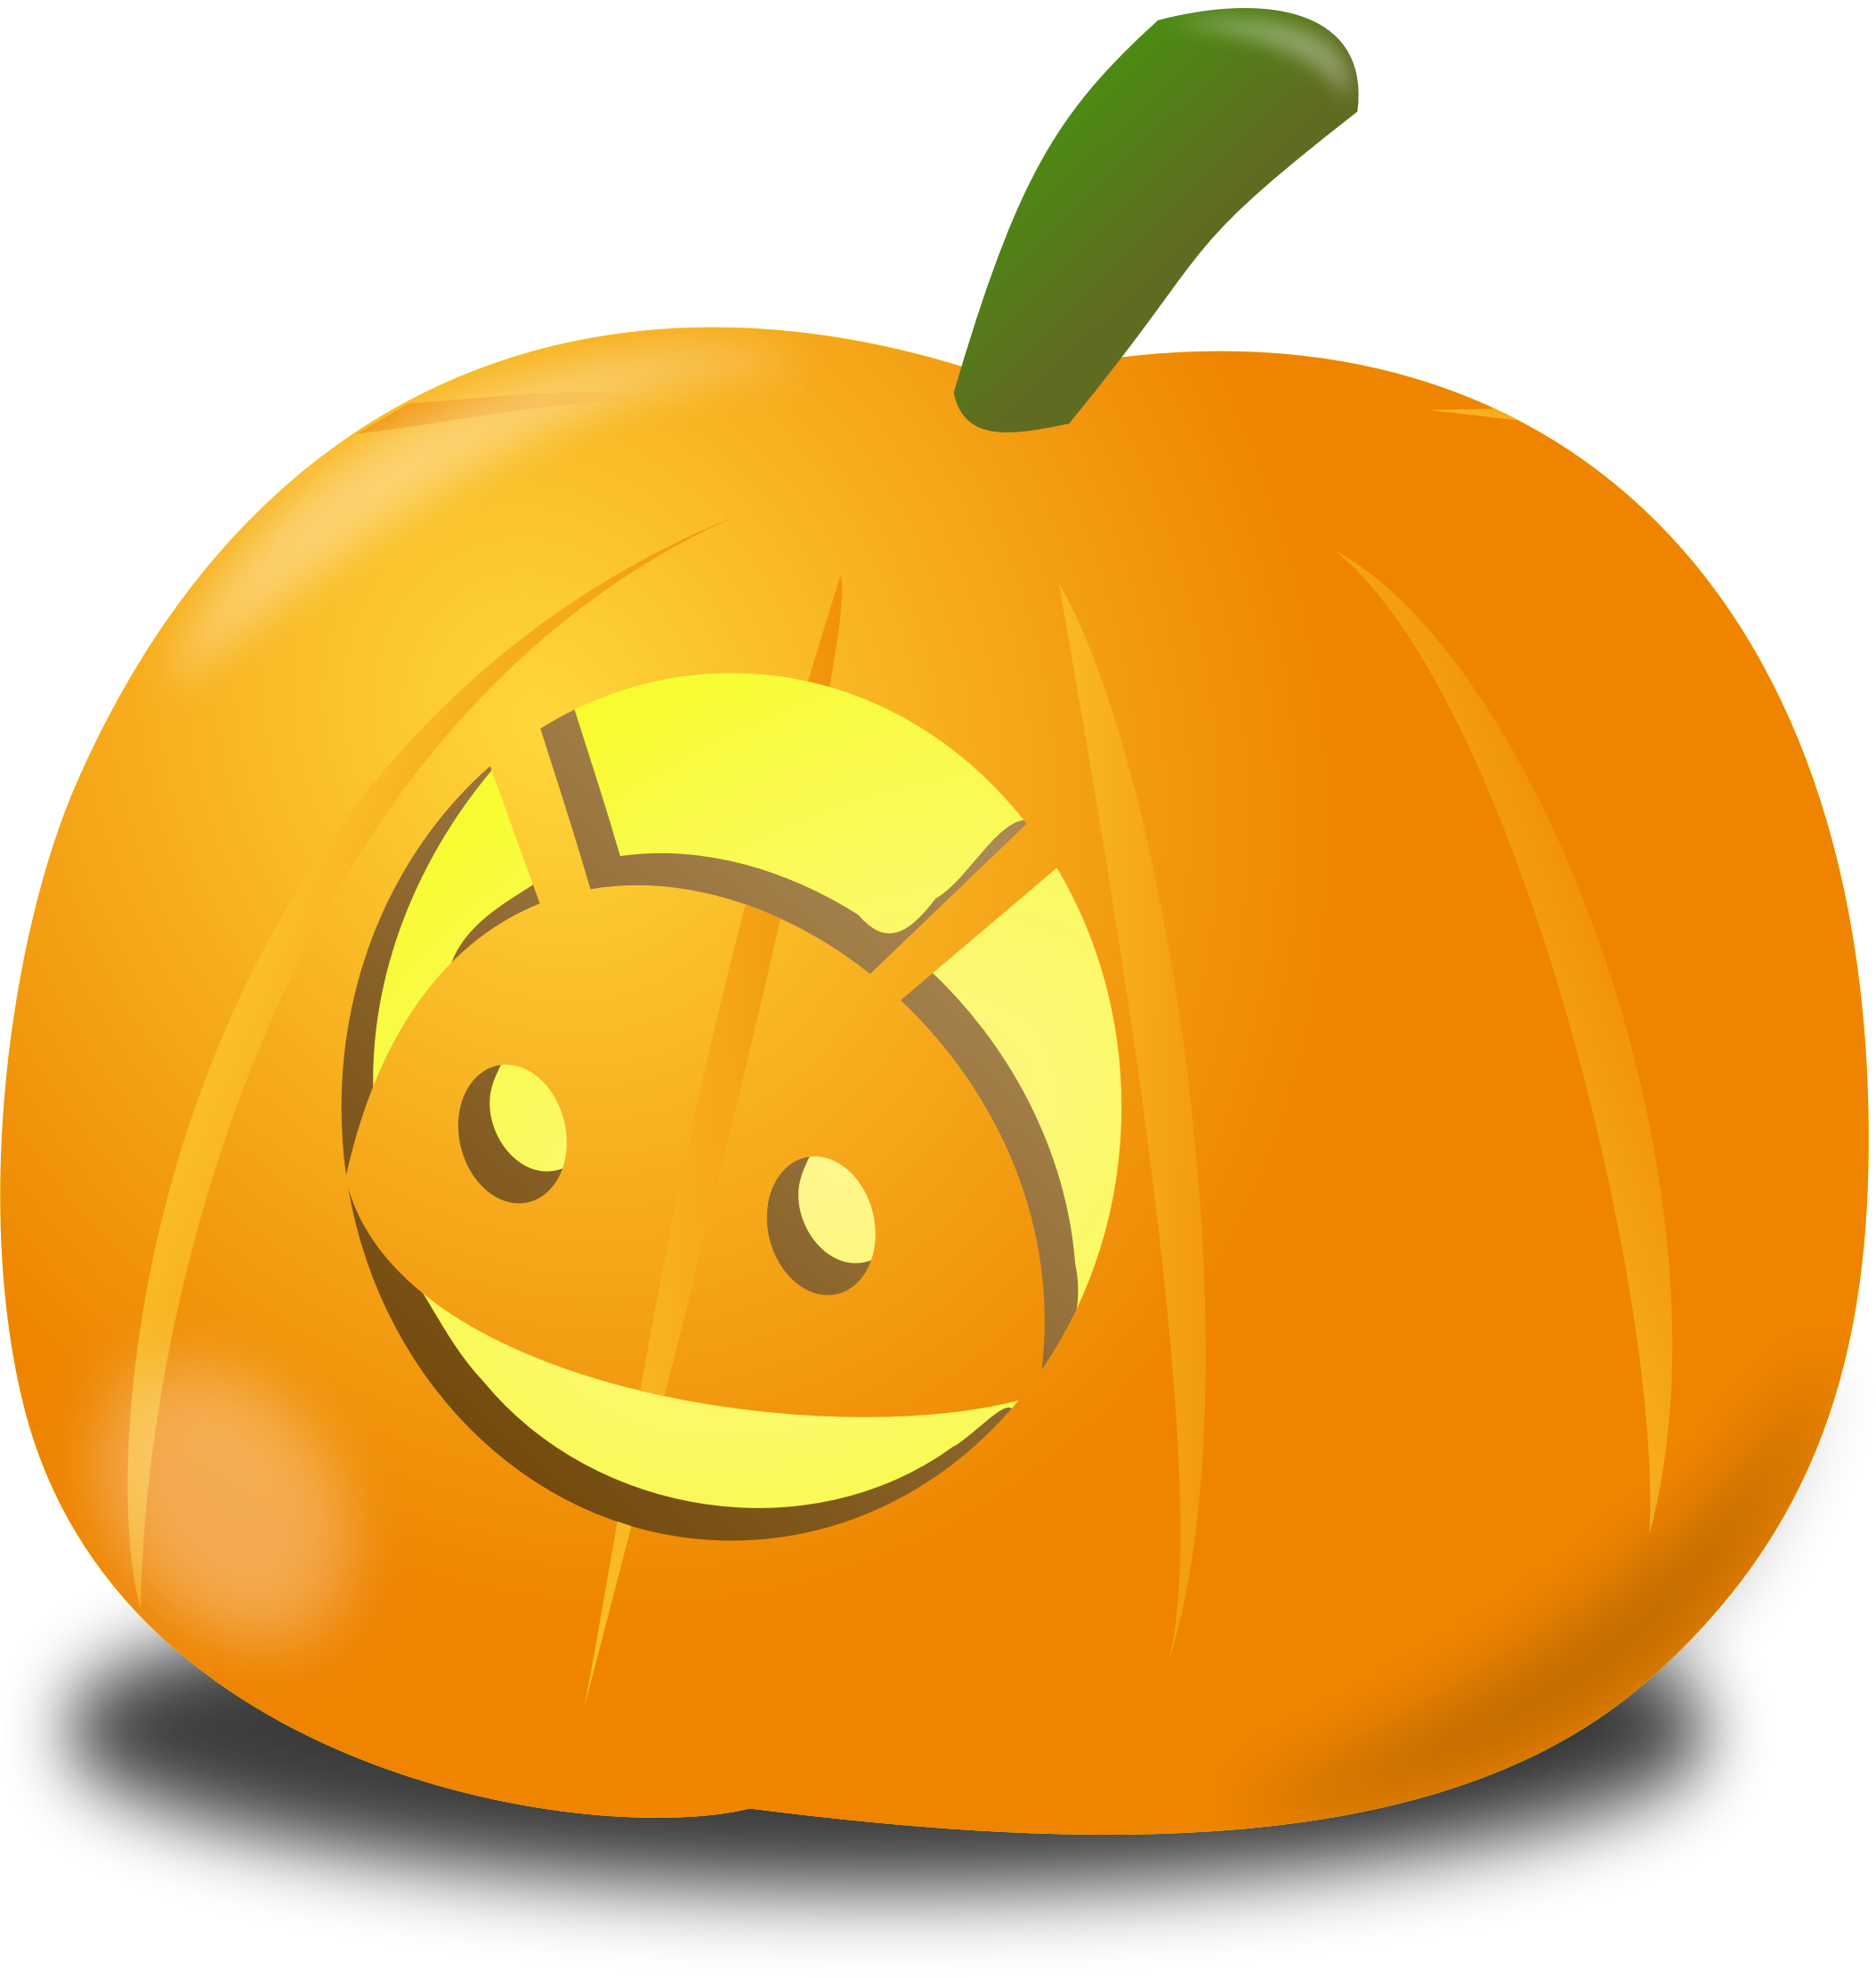 Pumpkin clipart .png clip black and white Android pumpkin Icons PNG - Free PNG and Icons Downloads clip black and white